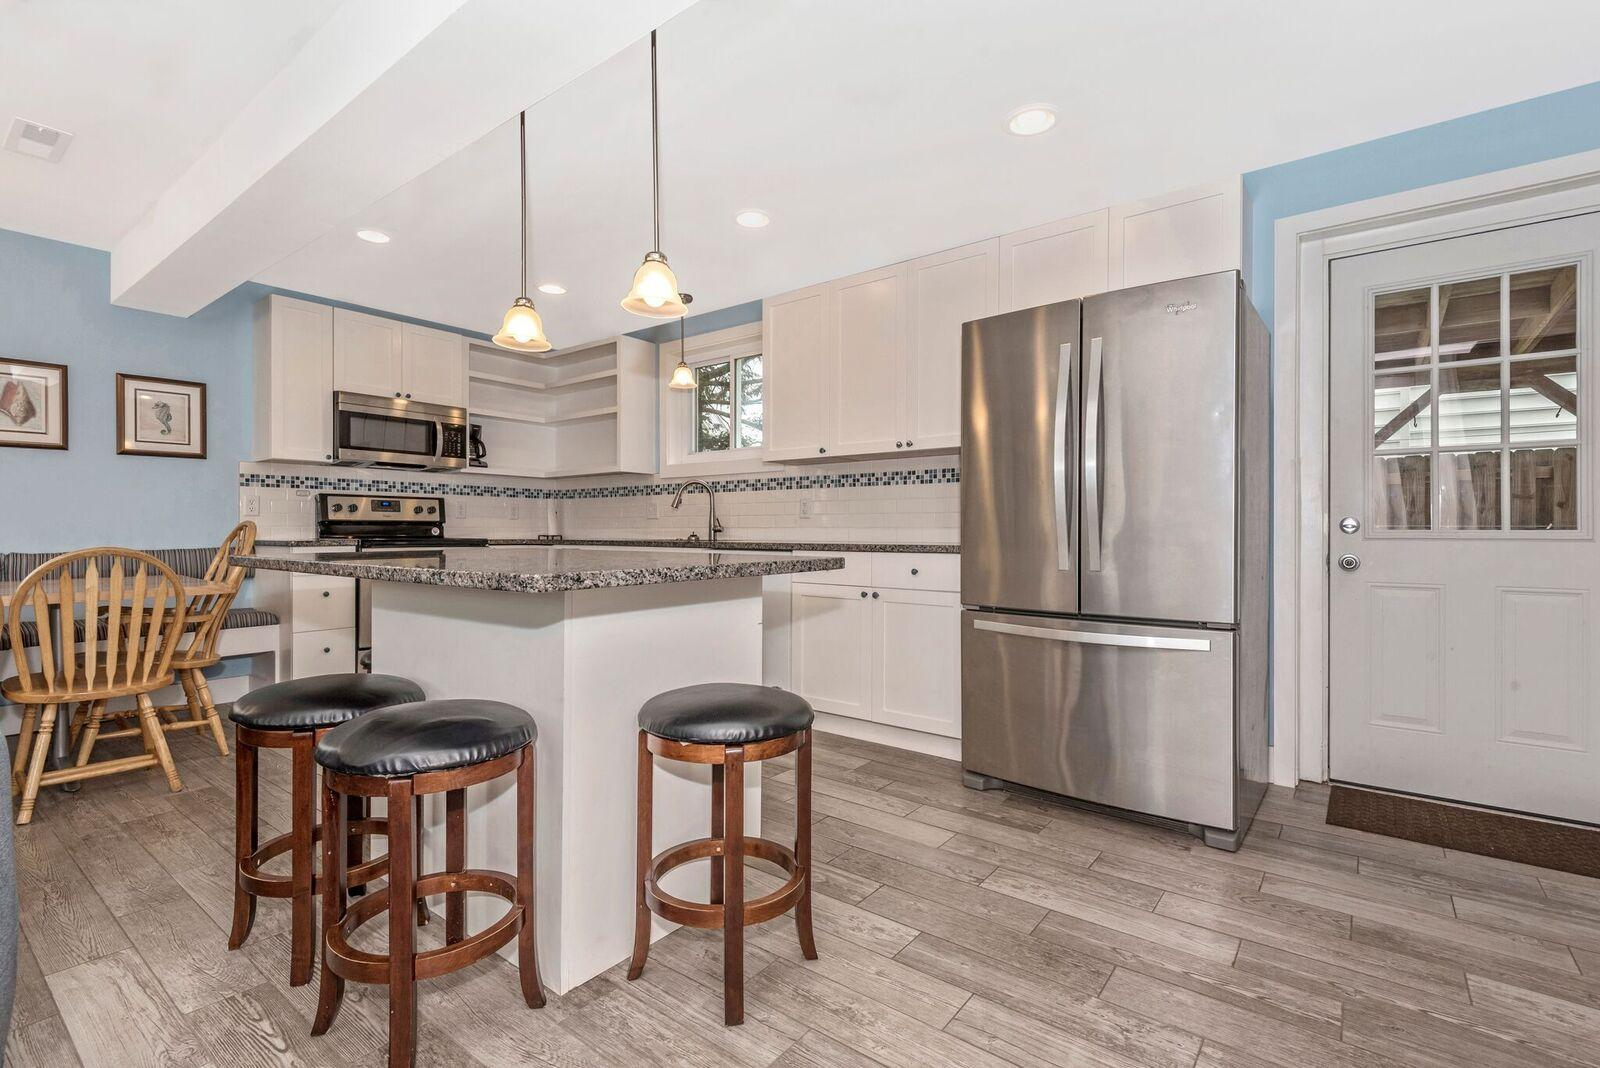 Kitchen island also has bar seating for extra dining